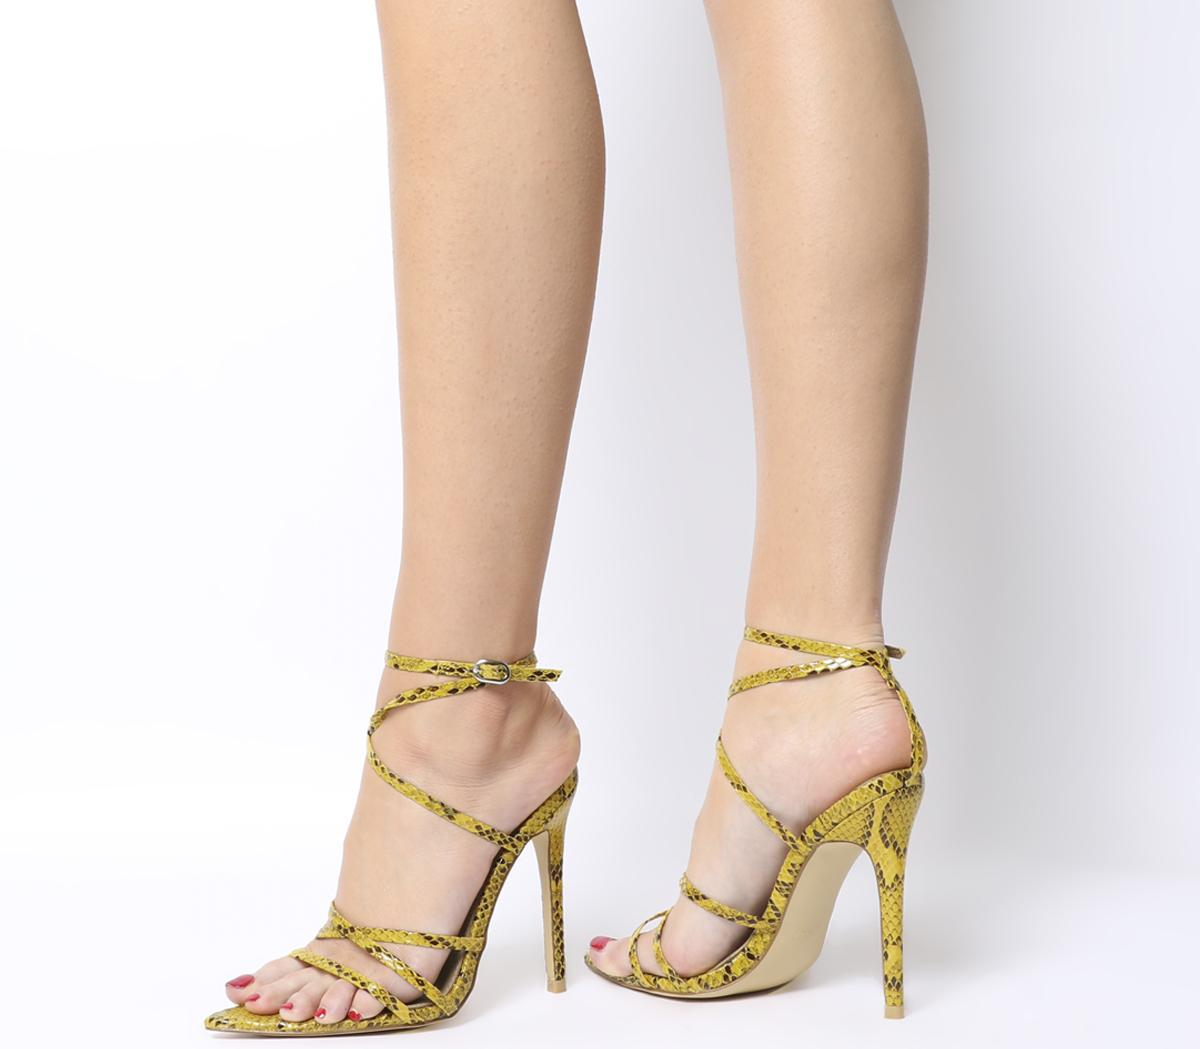 Kaia Strappy Heels by Ego